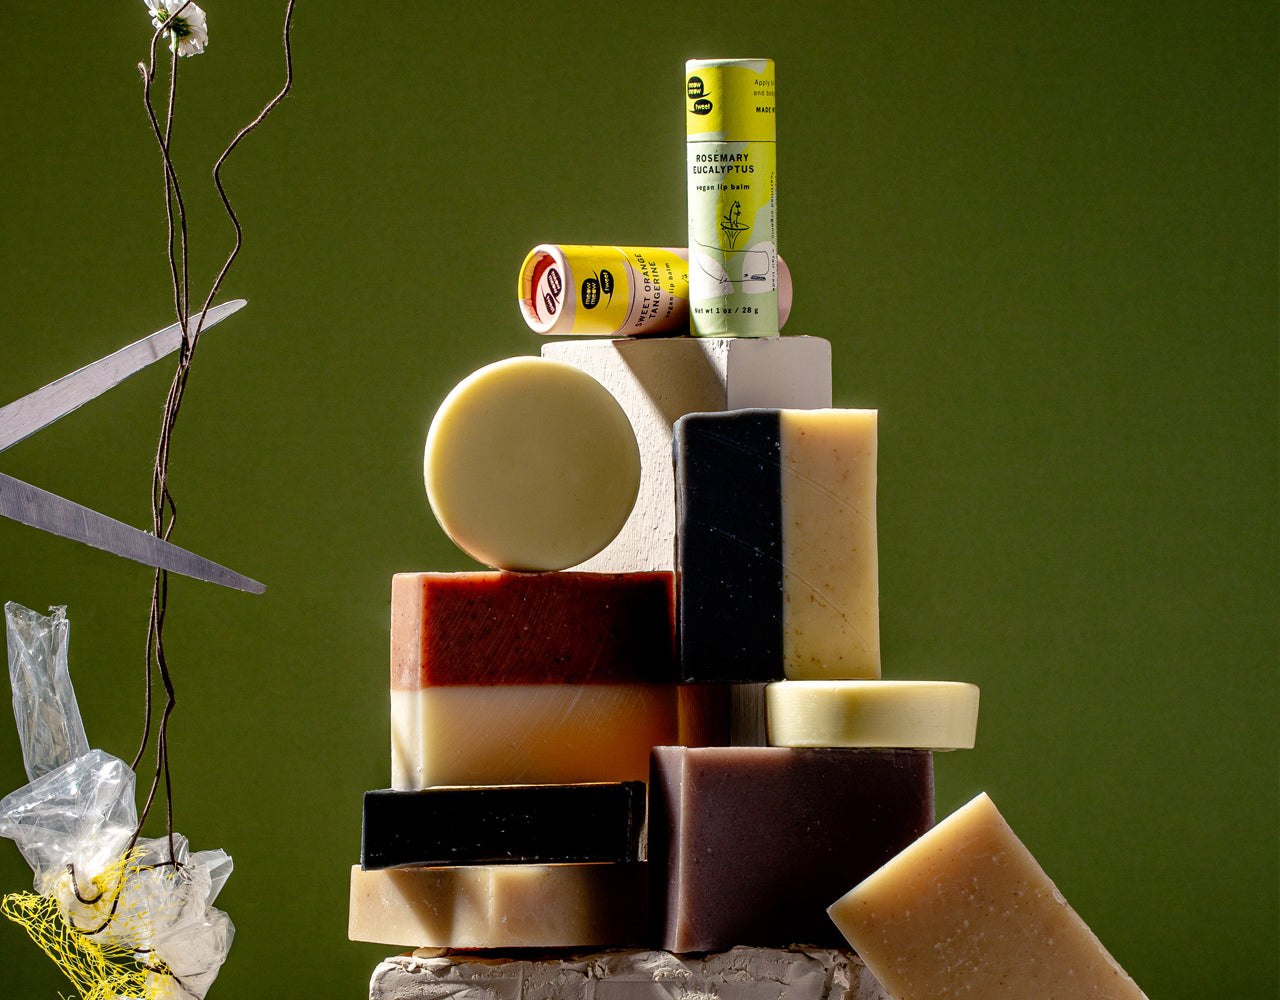 our soaps and lip balms stand in a tower against a pine backdrop, with a pair of scissors on the left open and ready to cut the stem of a flower that's connected to plastic waste